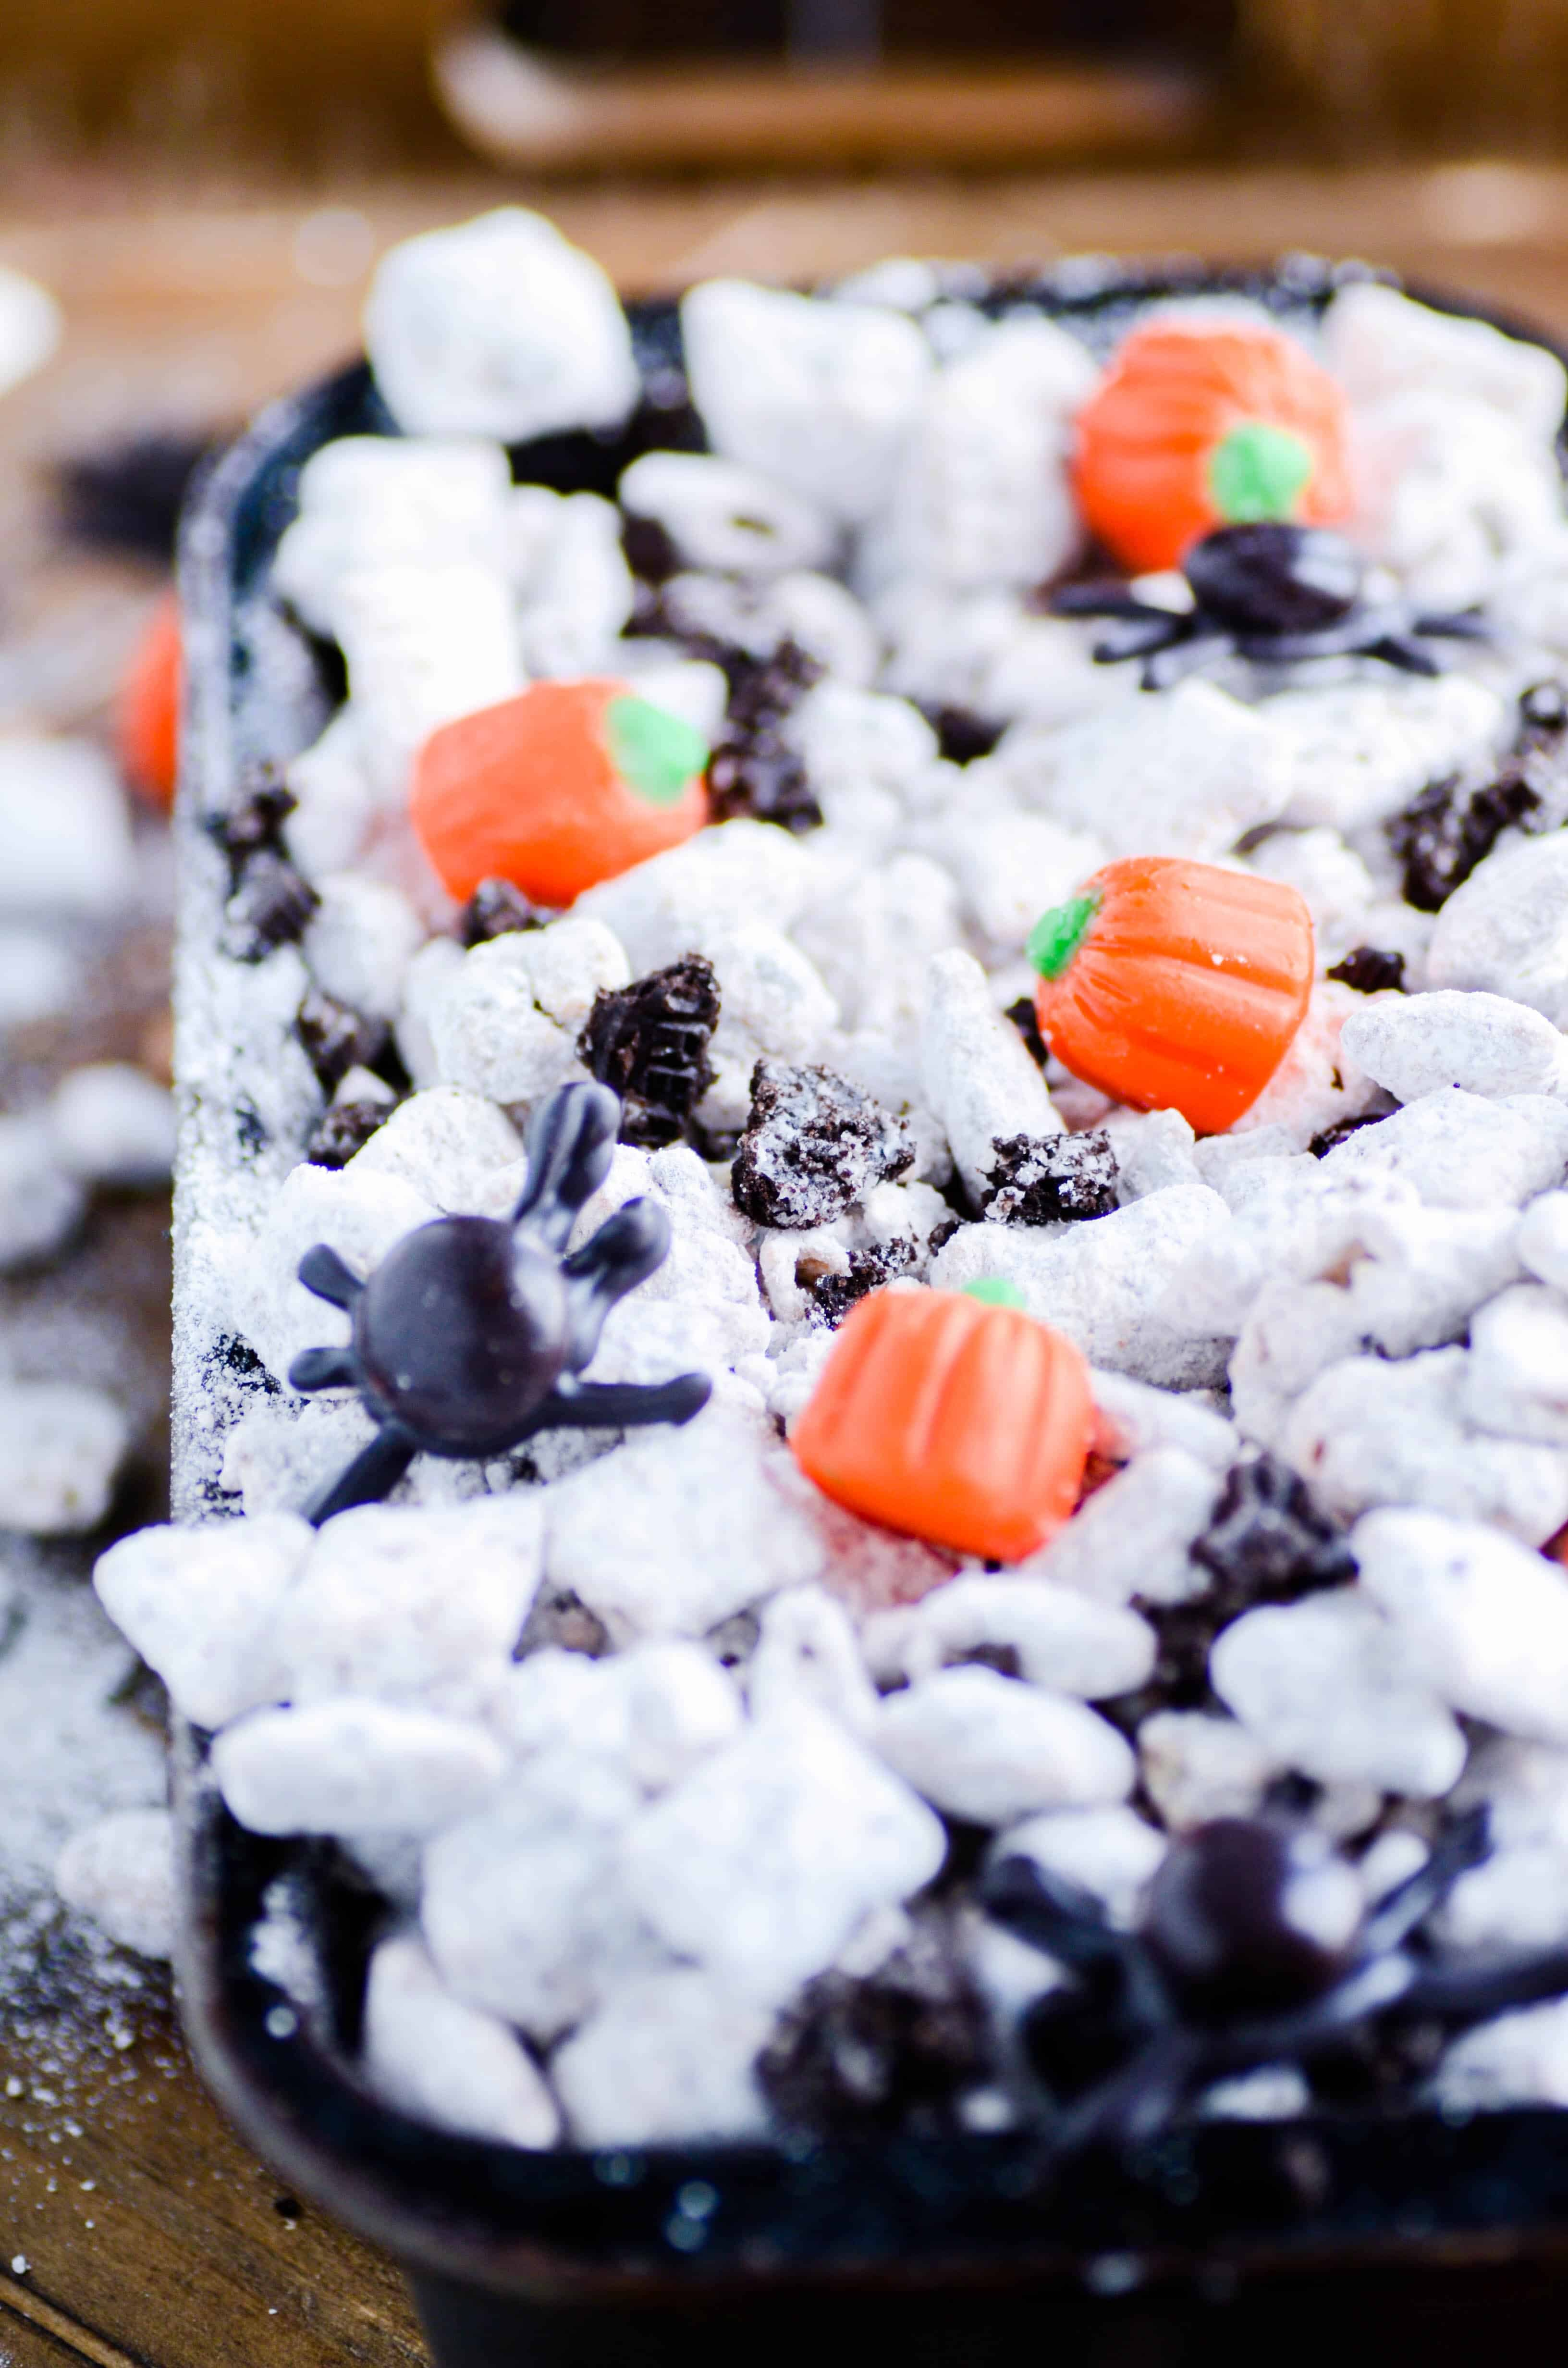 These Oreo-packed muddy buddies get a seasonal twist with pumpkin spice morsels!